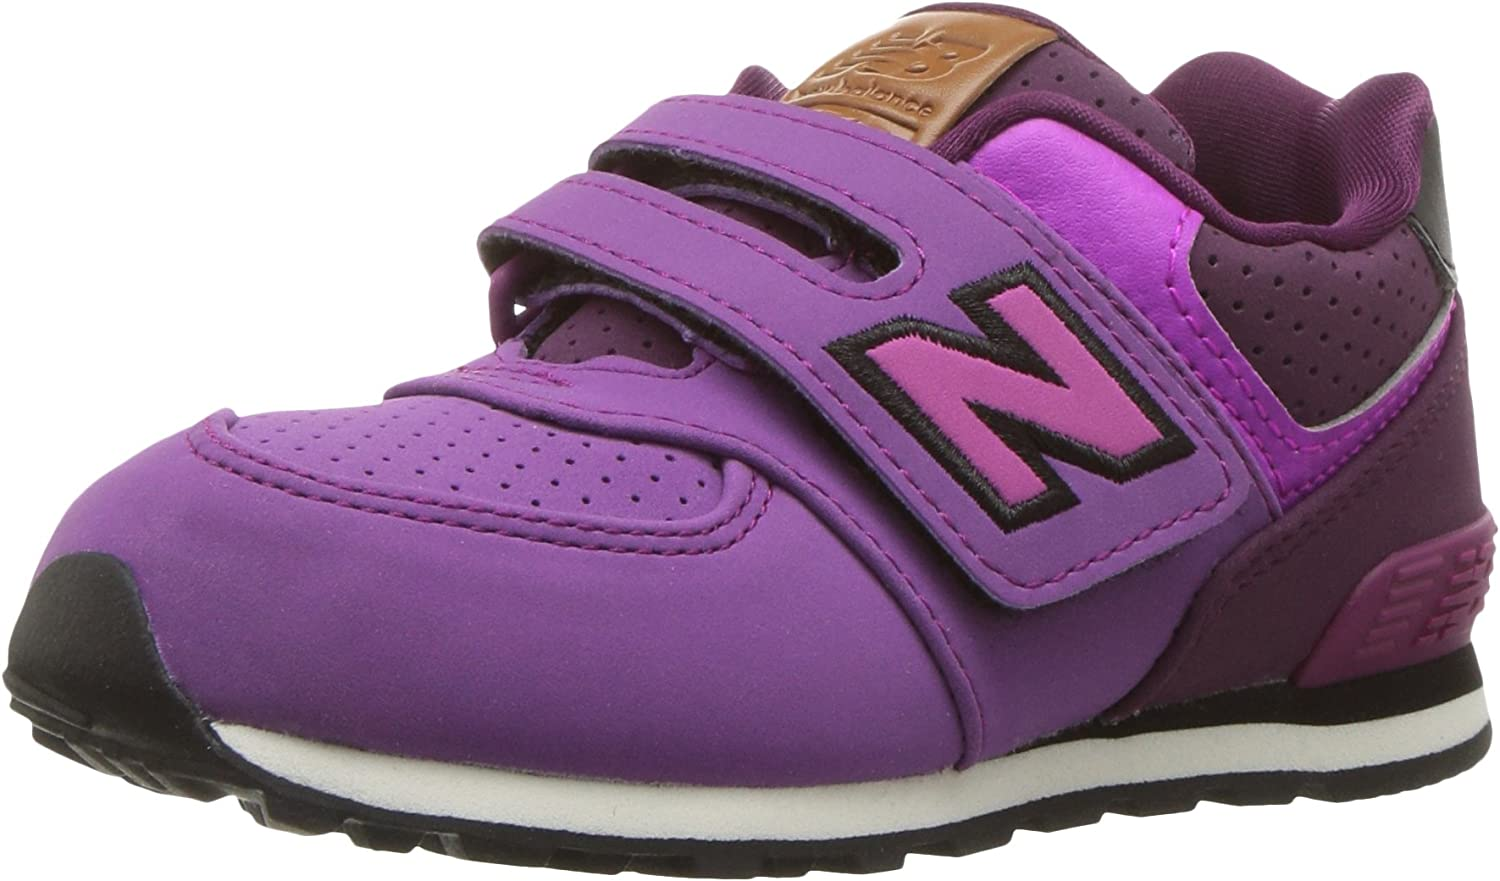 New Balance 574v1, Unisex Trainers